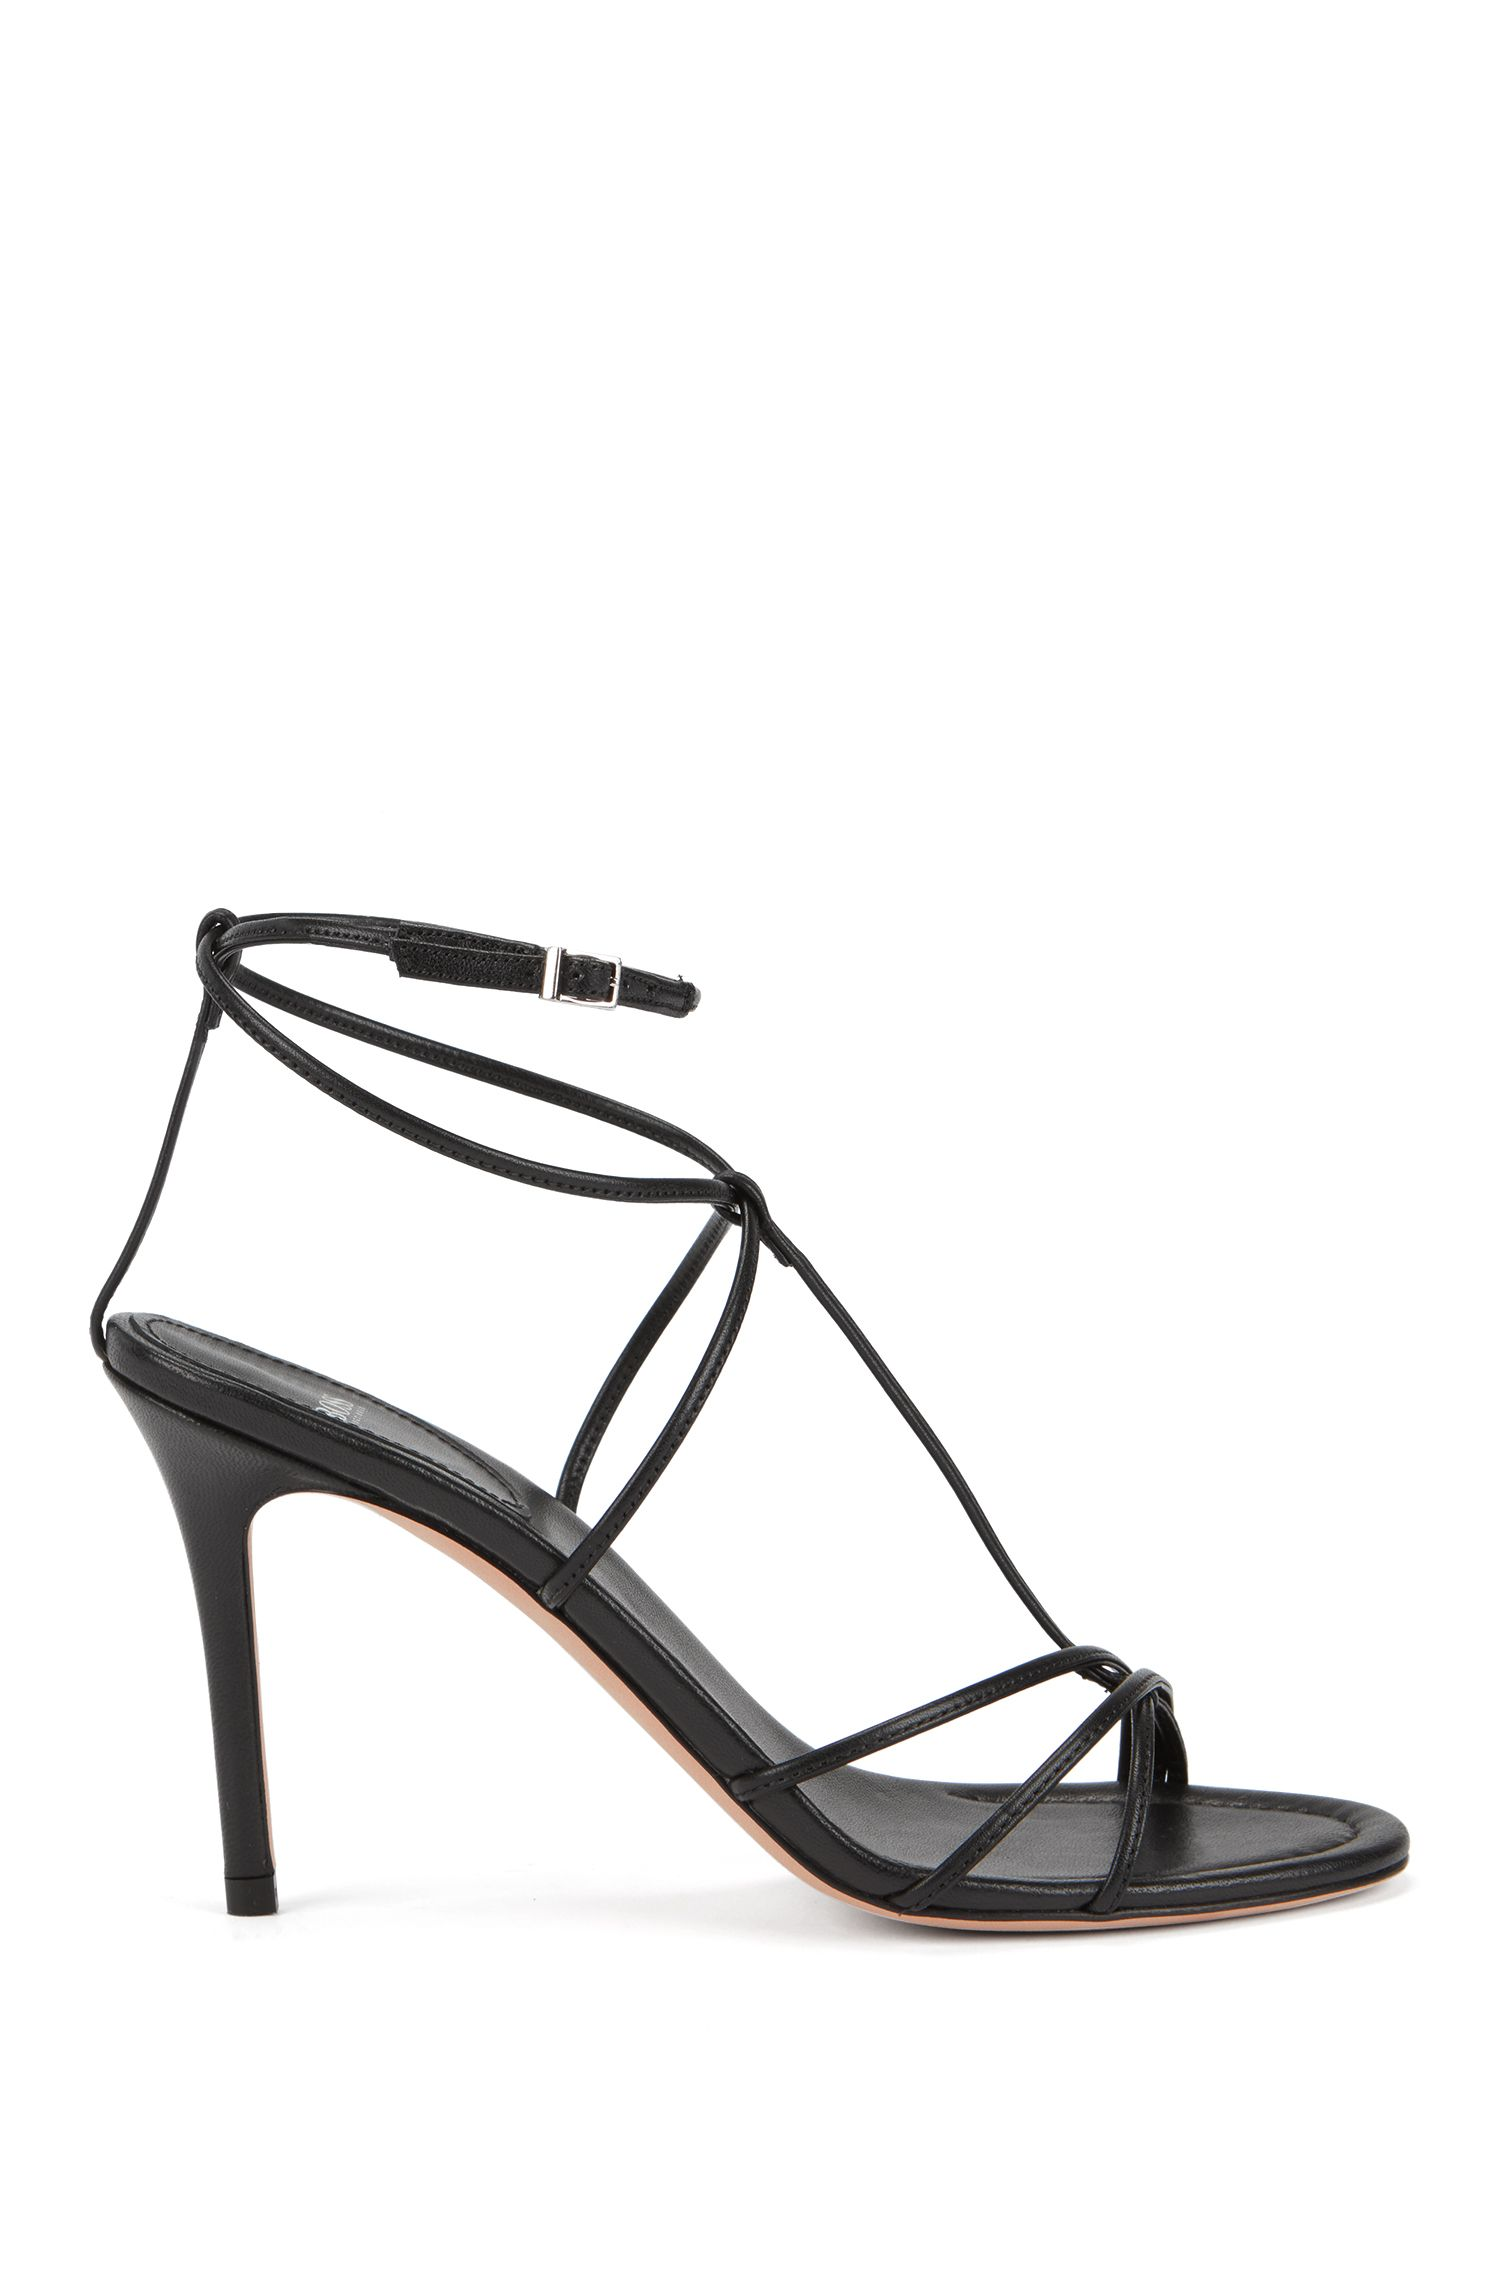 Gallery Collection sandals in Italian leather, Black